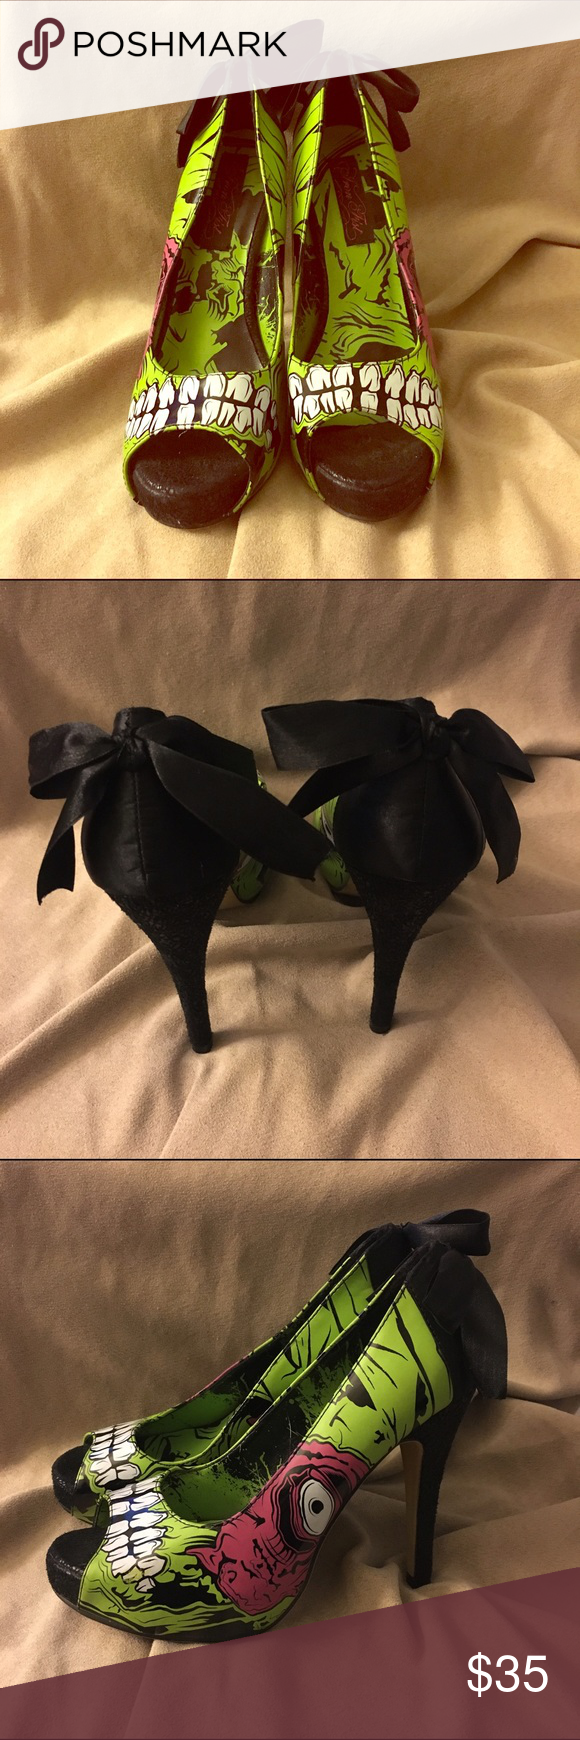 Iron Fist Zombie Stompers Heels Size 6 platform heels. Brand new. Only tried on in store. Faux suede heel and platform front. Image of zombie face on side of heel. Bow on back of heel. Iron Fist Shoes Heels